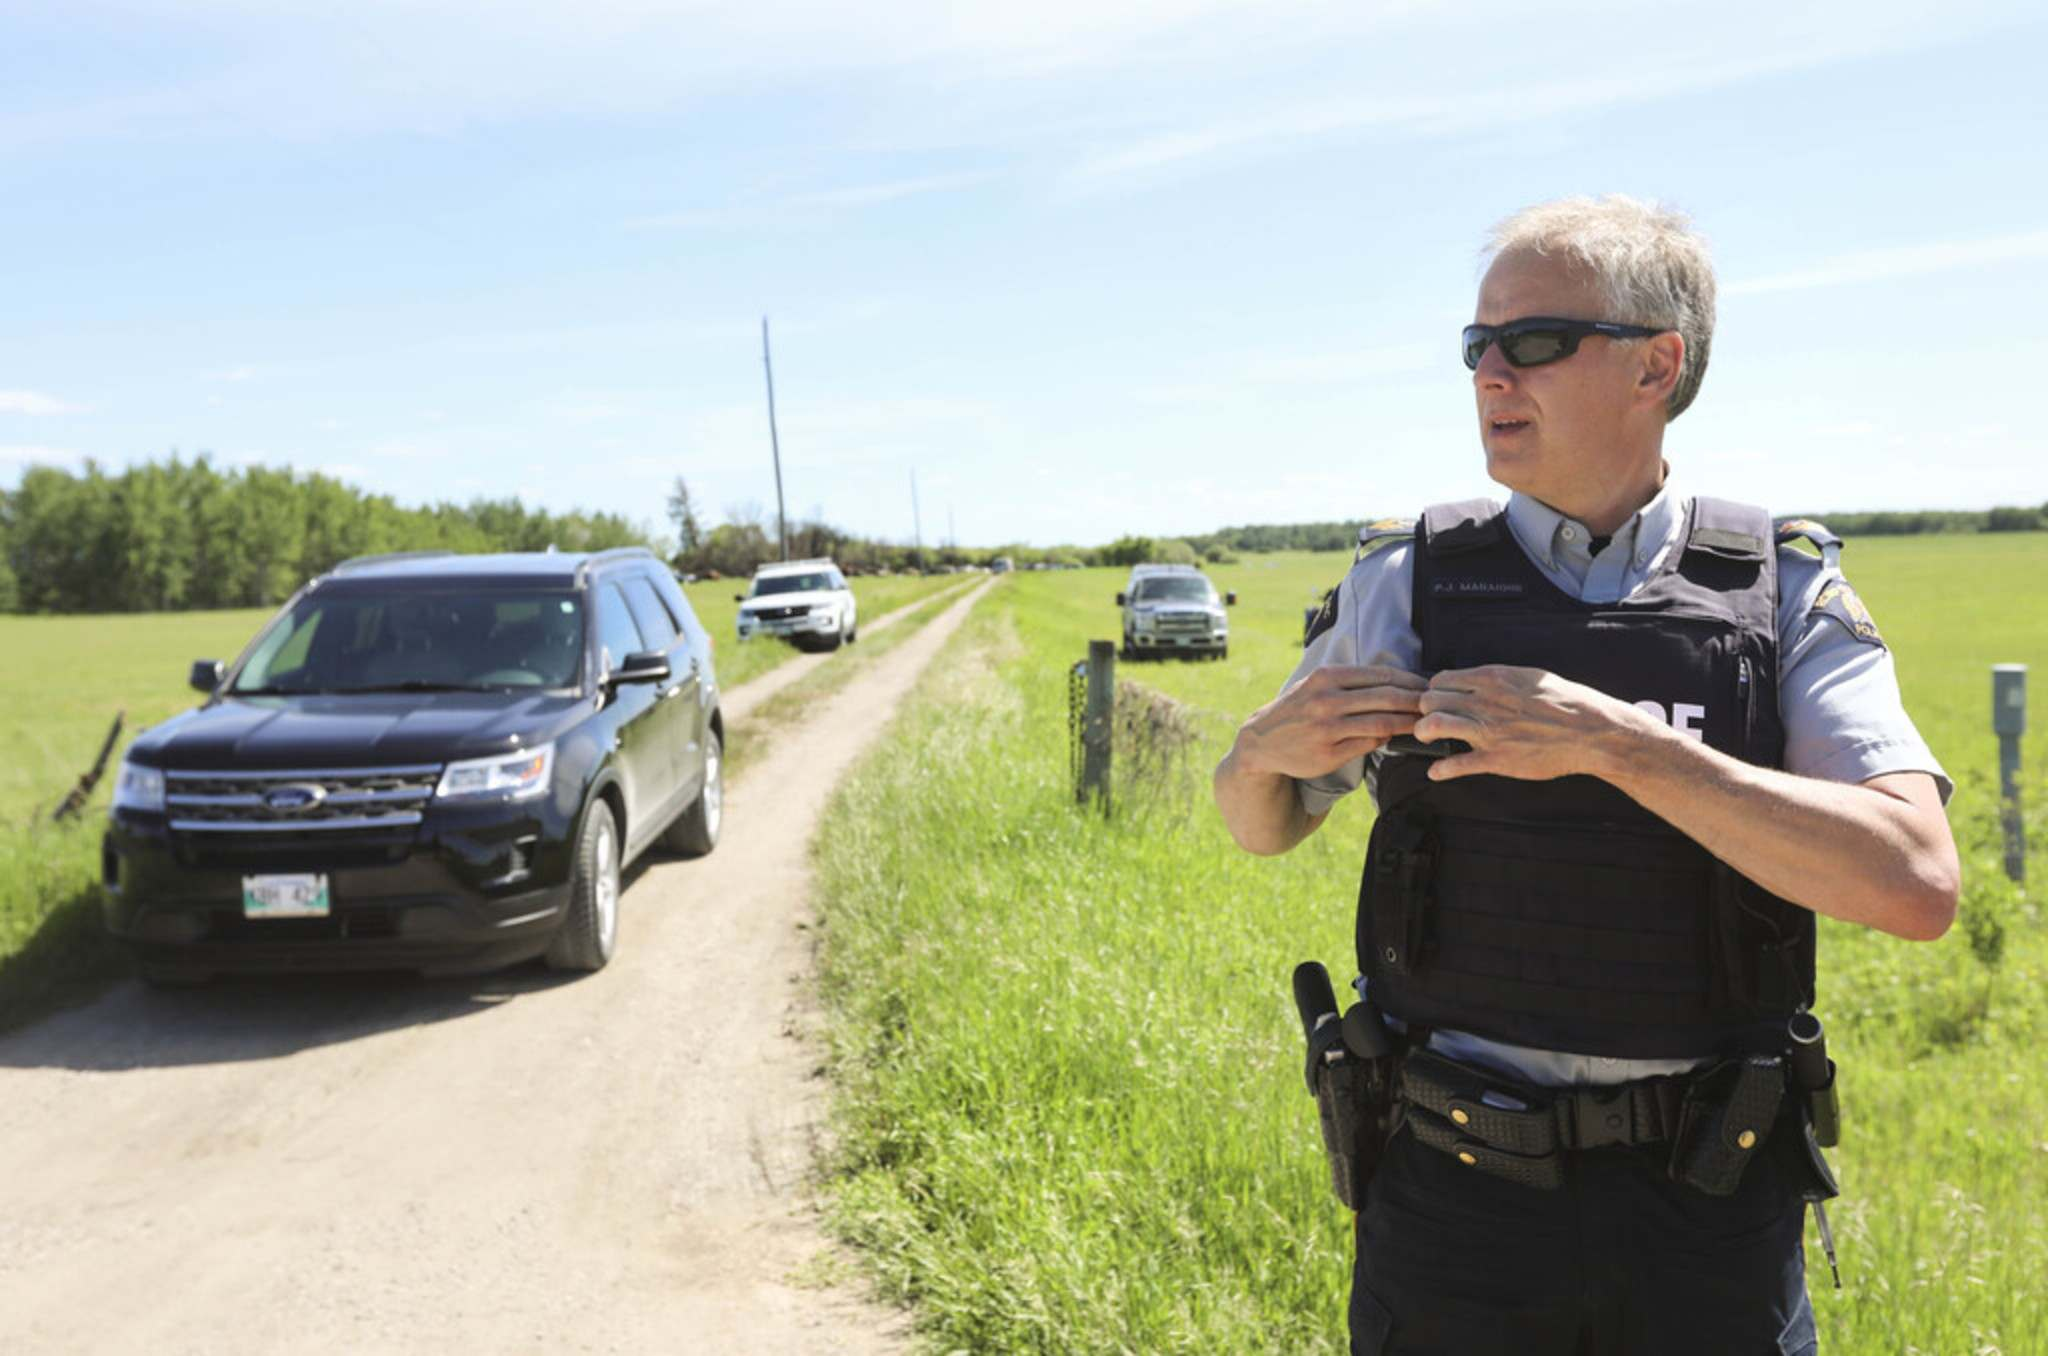 RUTH BONNEVILLE / WINNIPEG FREE PRESS</p><p>RCMP Sgt. Paul Manaigne at Eric Paul Wildman's property near the RM of St. Clements as investigators look for evidence of his connection with a possible hiomicide of Clifford Joseph who was his neighbour.</p>